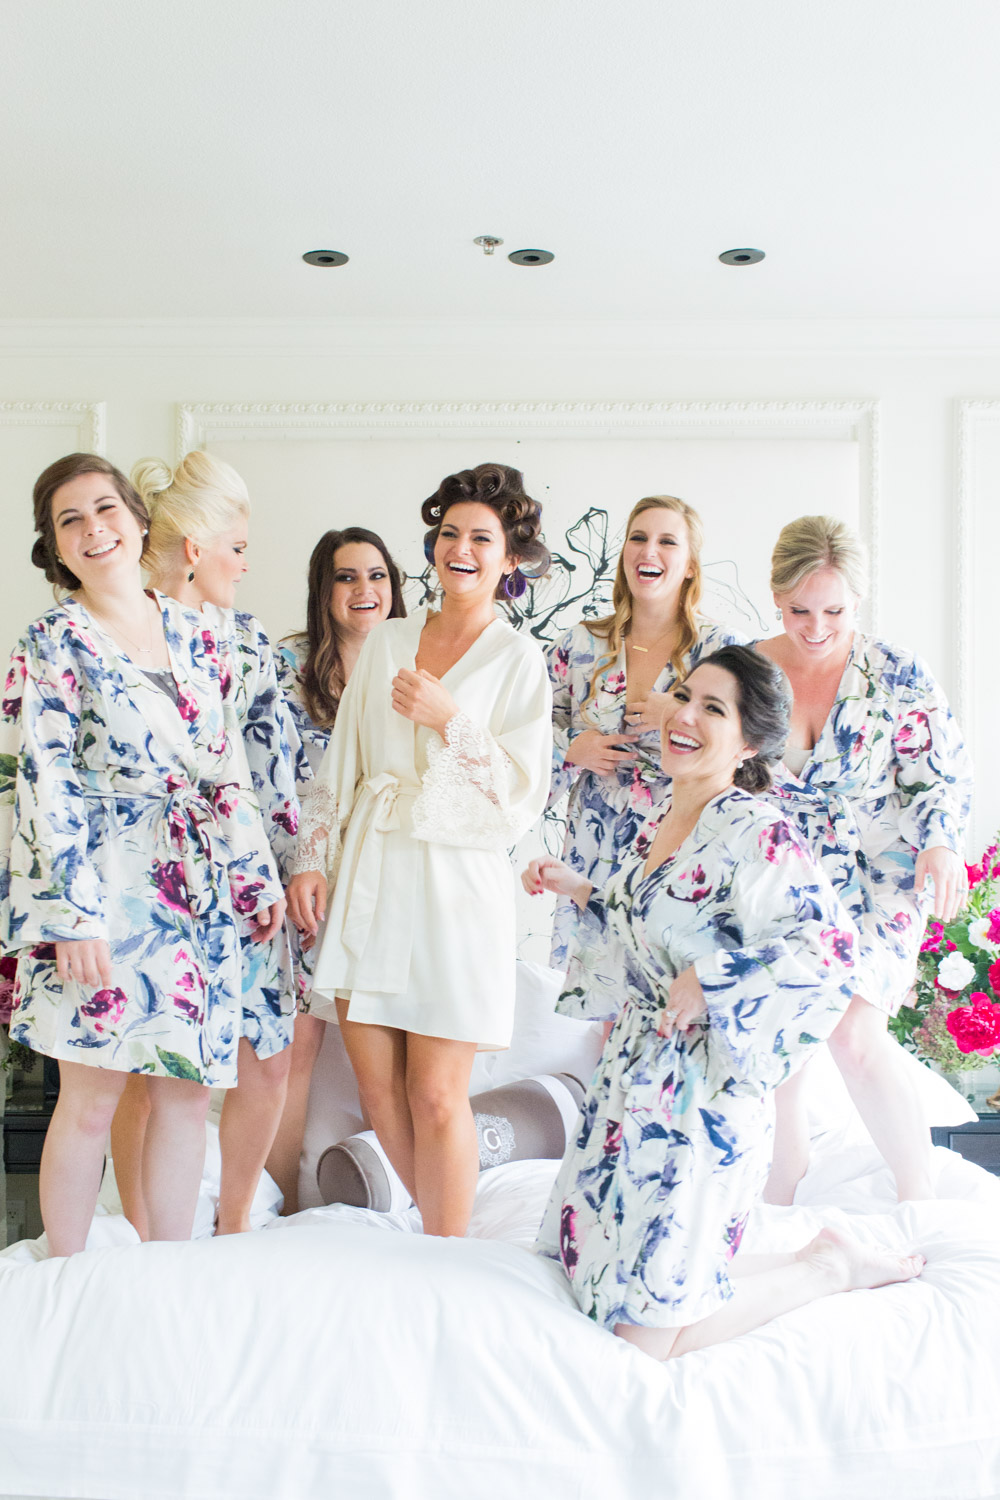 Bride and bridesmaids jumping on the bed in their robes, Cavin Elizabeth Photography